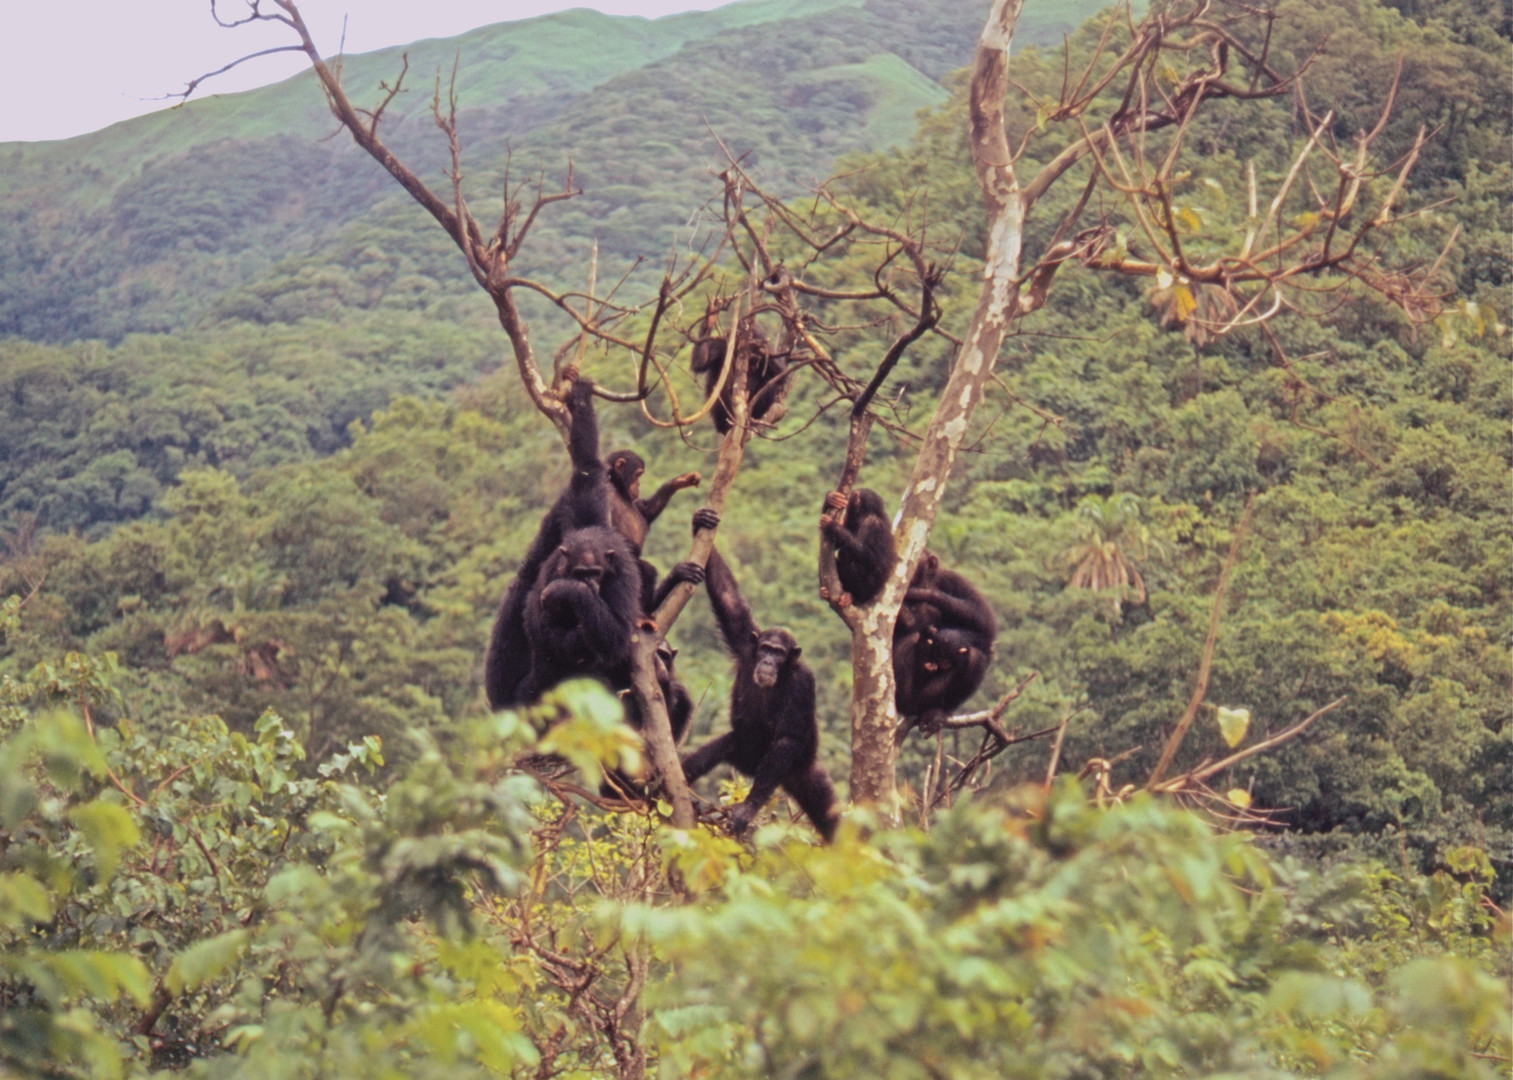 A gathering of chimps socializing in a tree and surveying the valley. Photo by John Crocker, 1973.